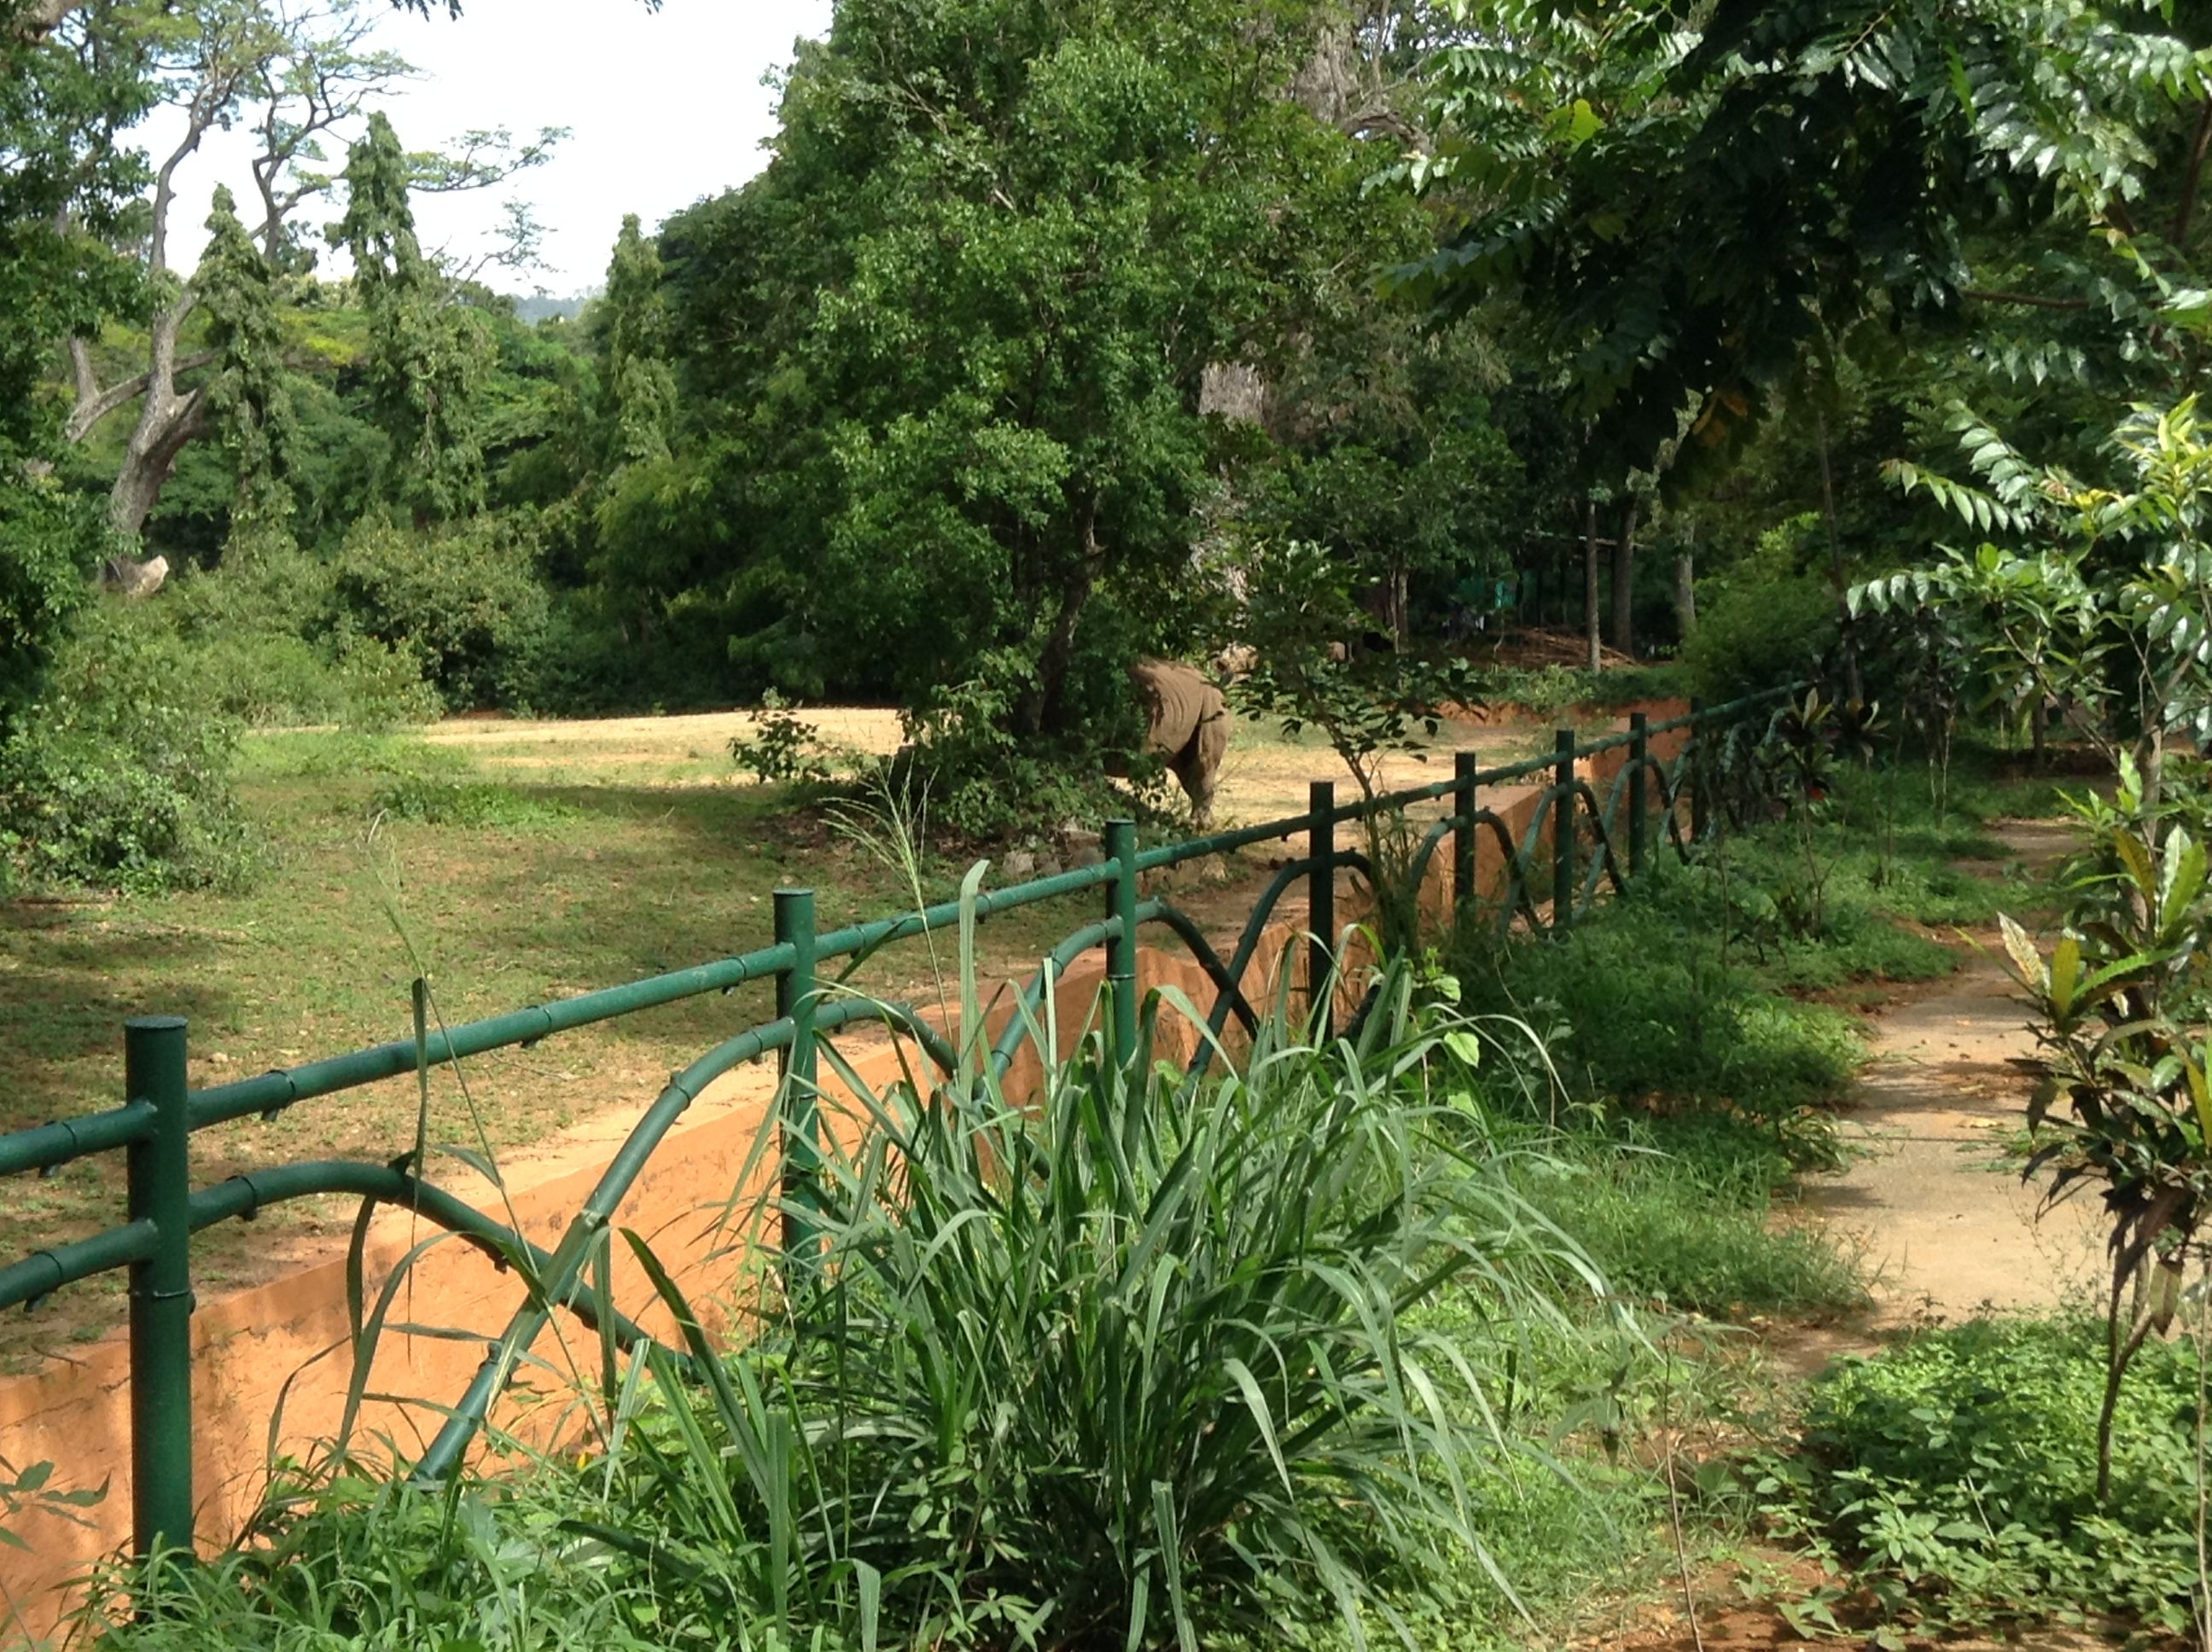 f6bd68a6d6873eb97fc3b4fa6bf09ac8 - Mysore Zoo Sri Chamarajendra Zoological Gardens